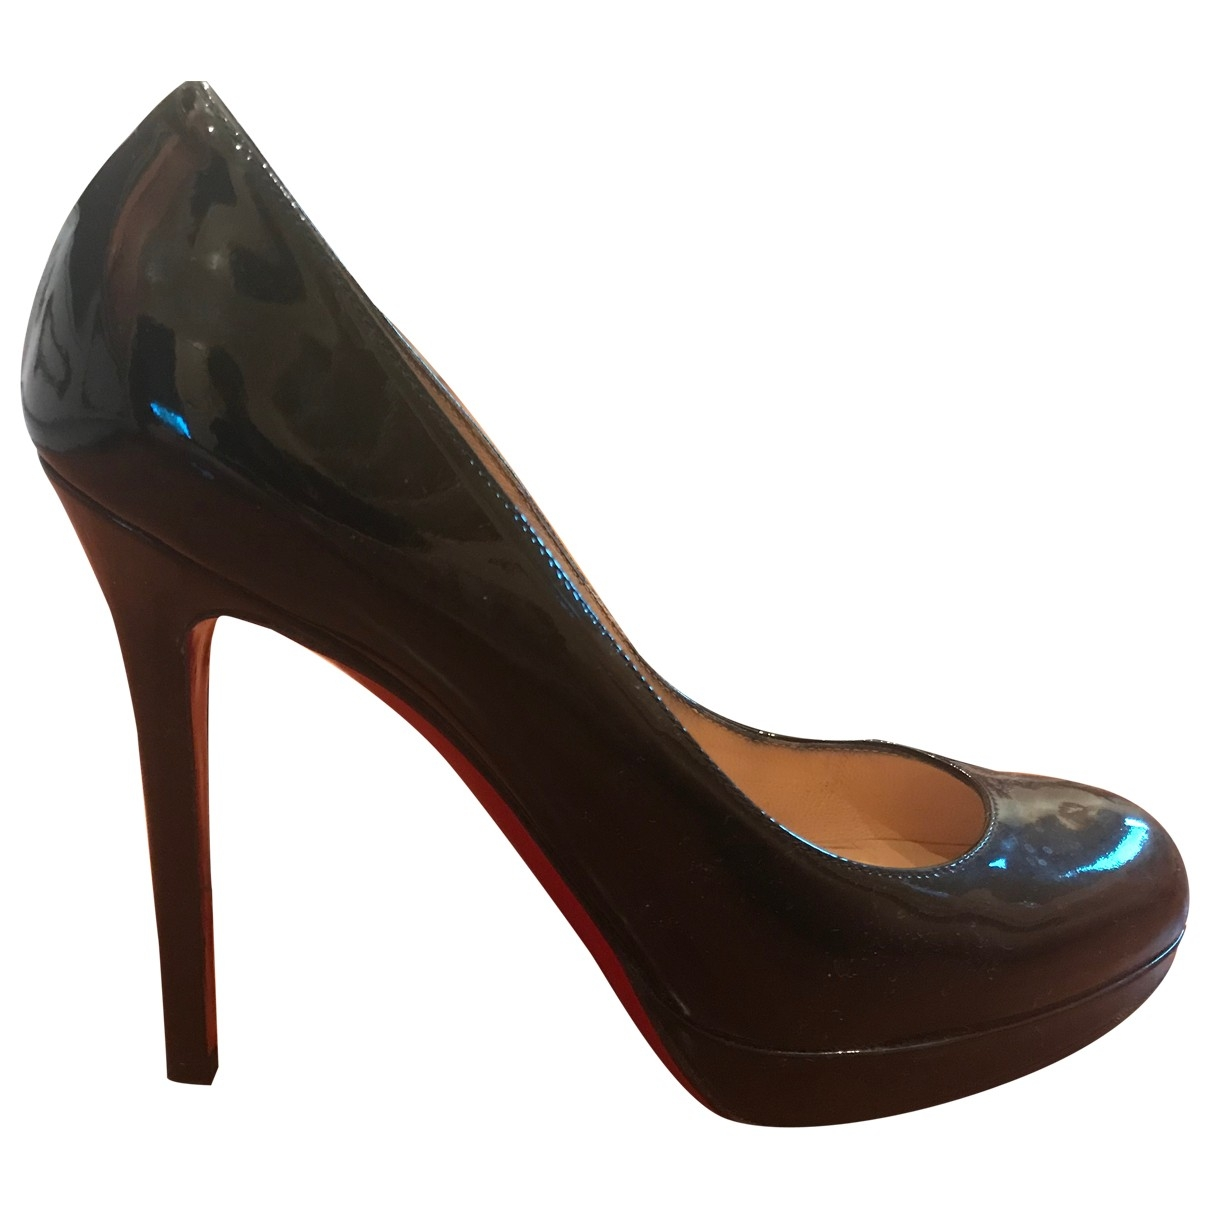 Christian Louboutin Simple pump Black Patent leather Heels for Women 36.5 EU